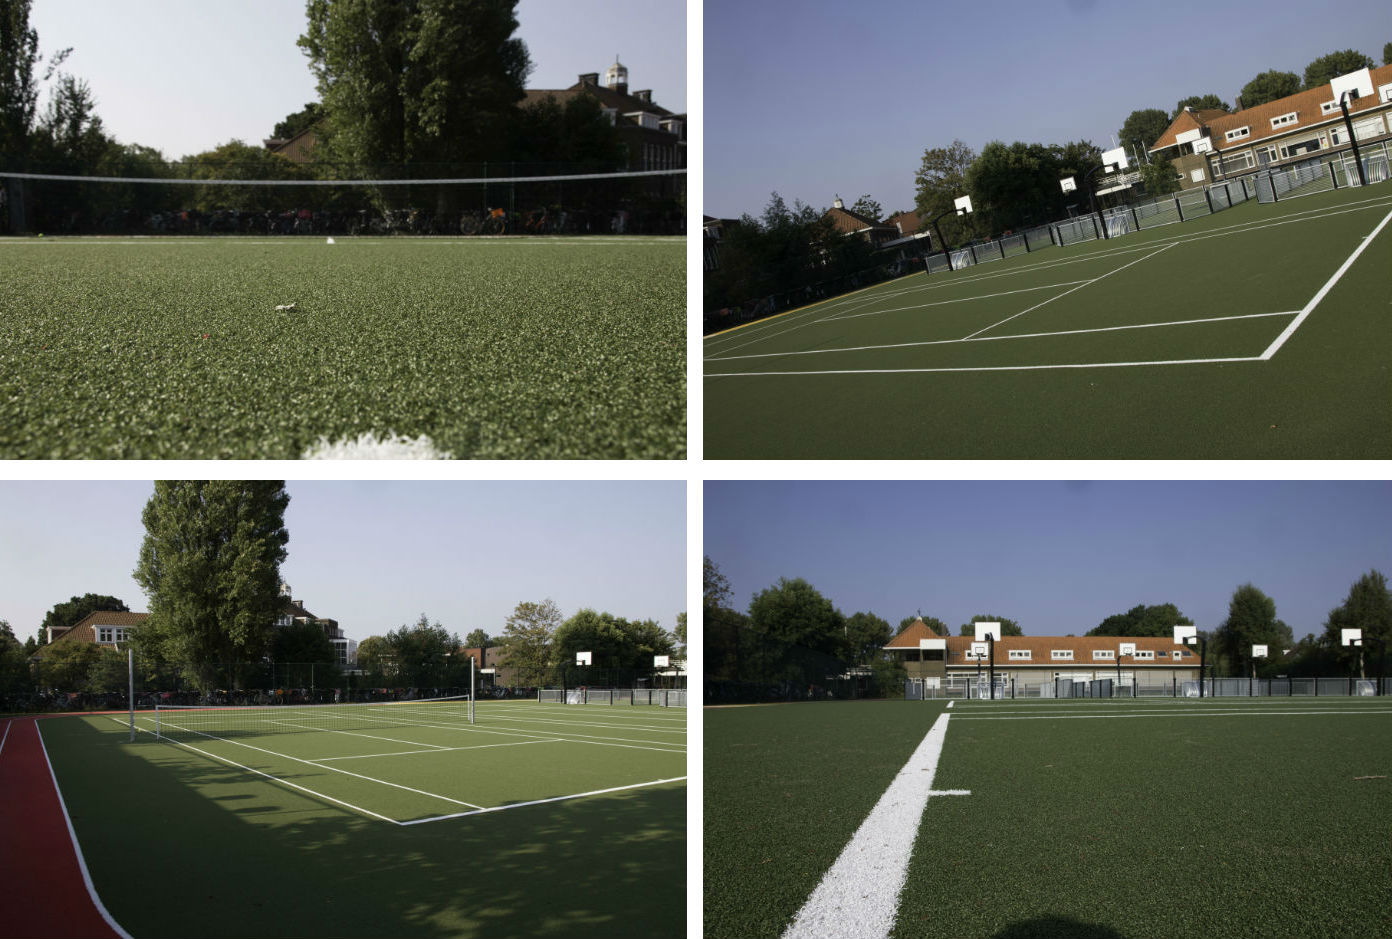 Artificial grass tennis surfaces